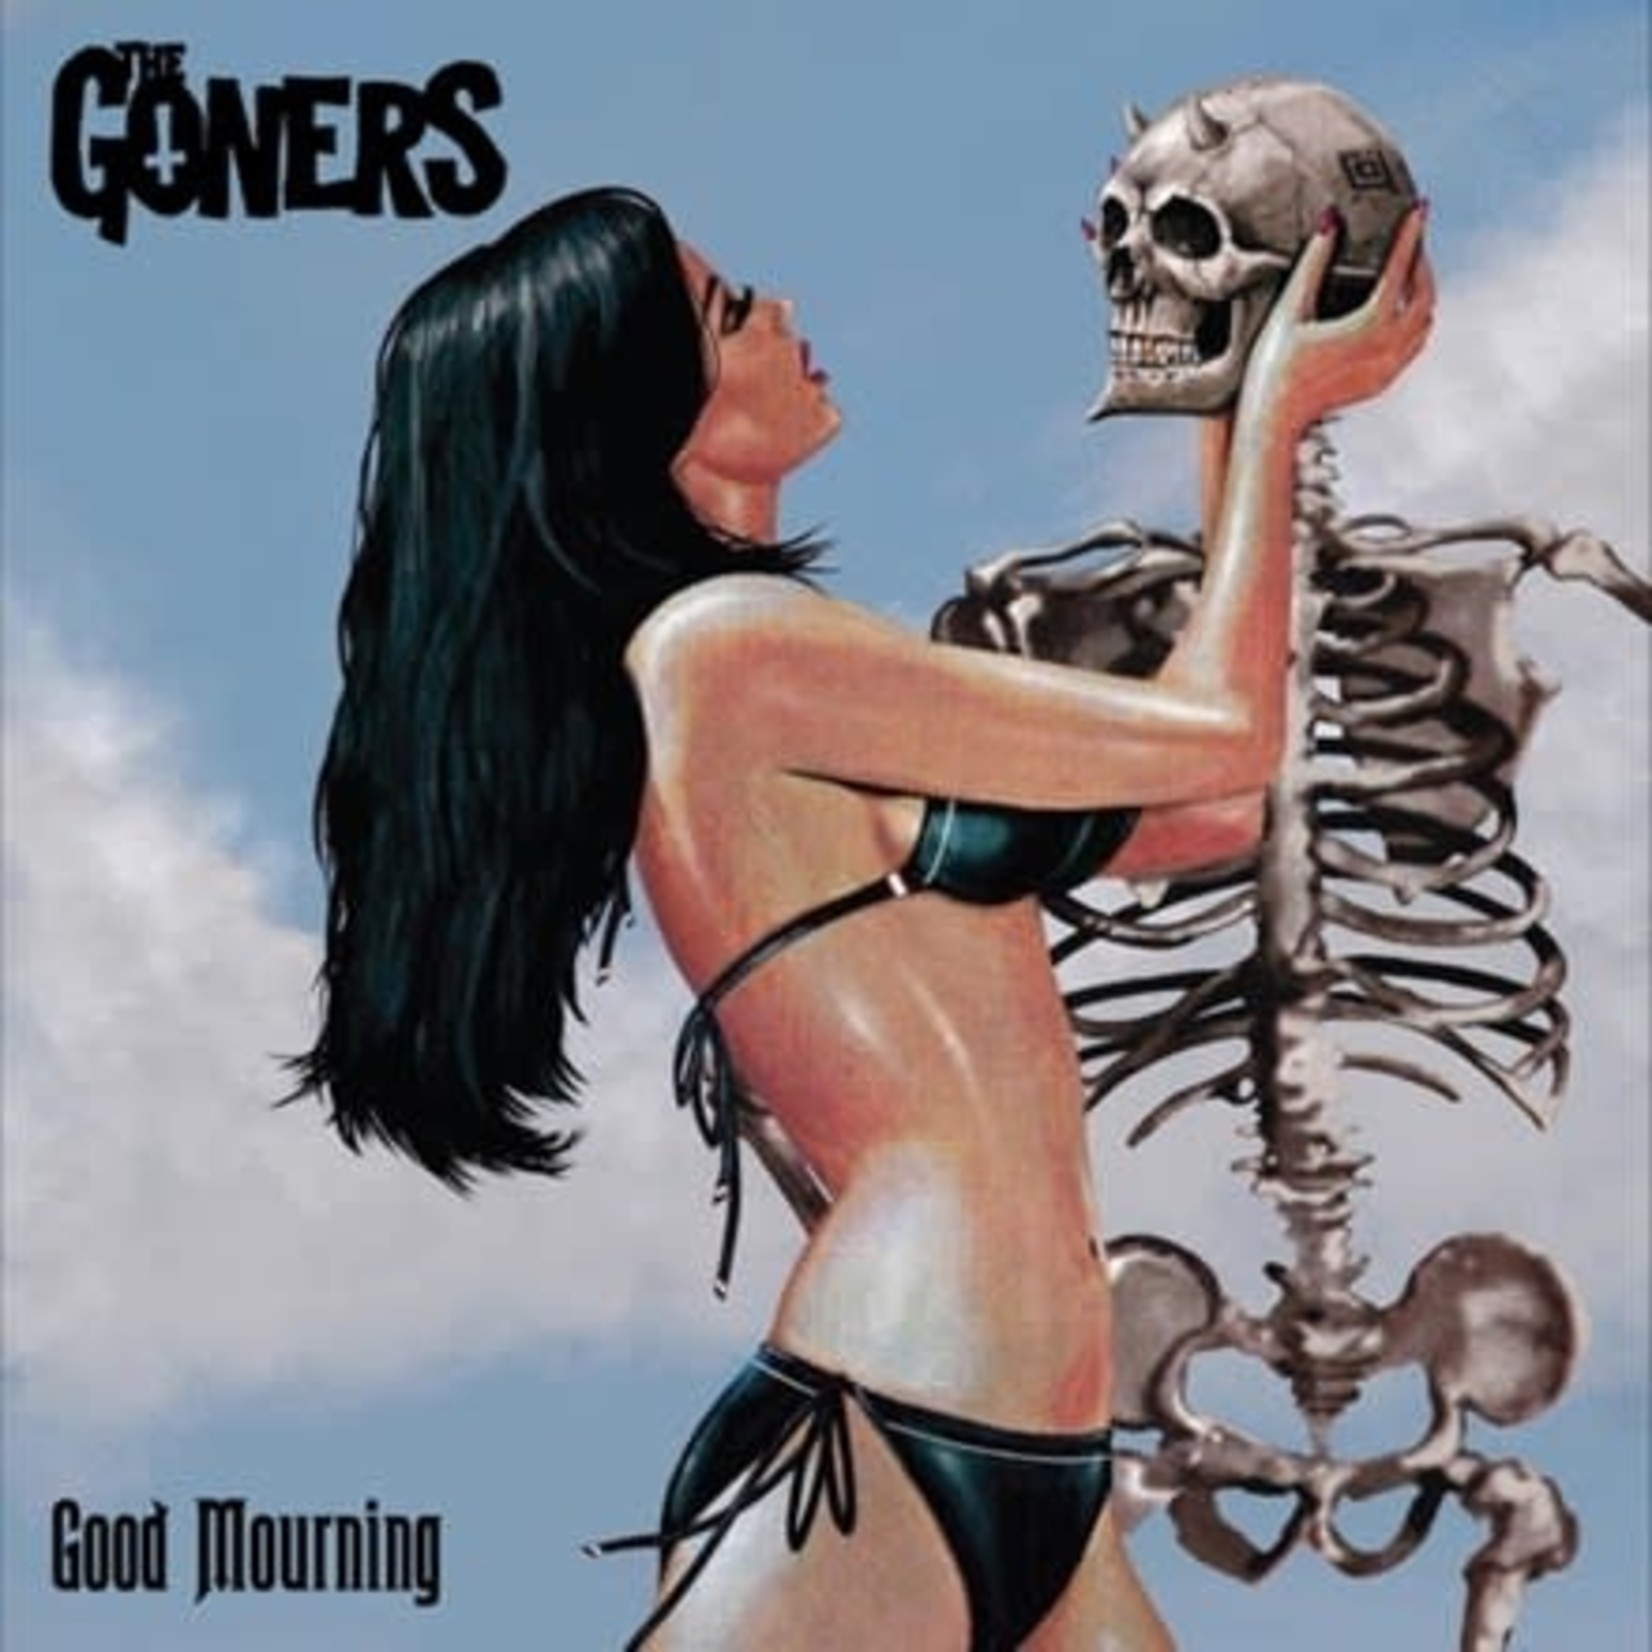 [New] Goners: Good Mourning